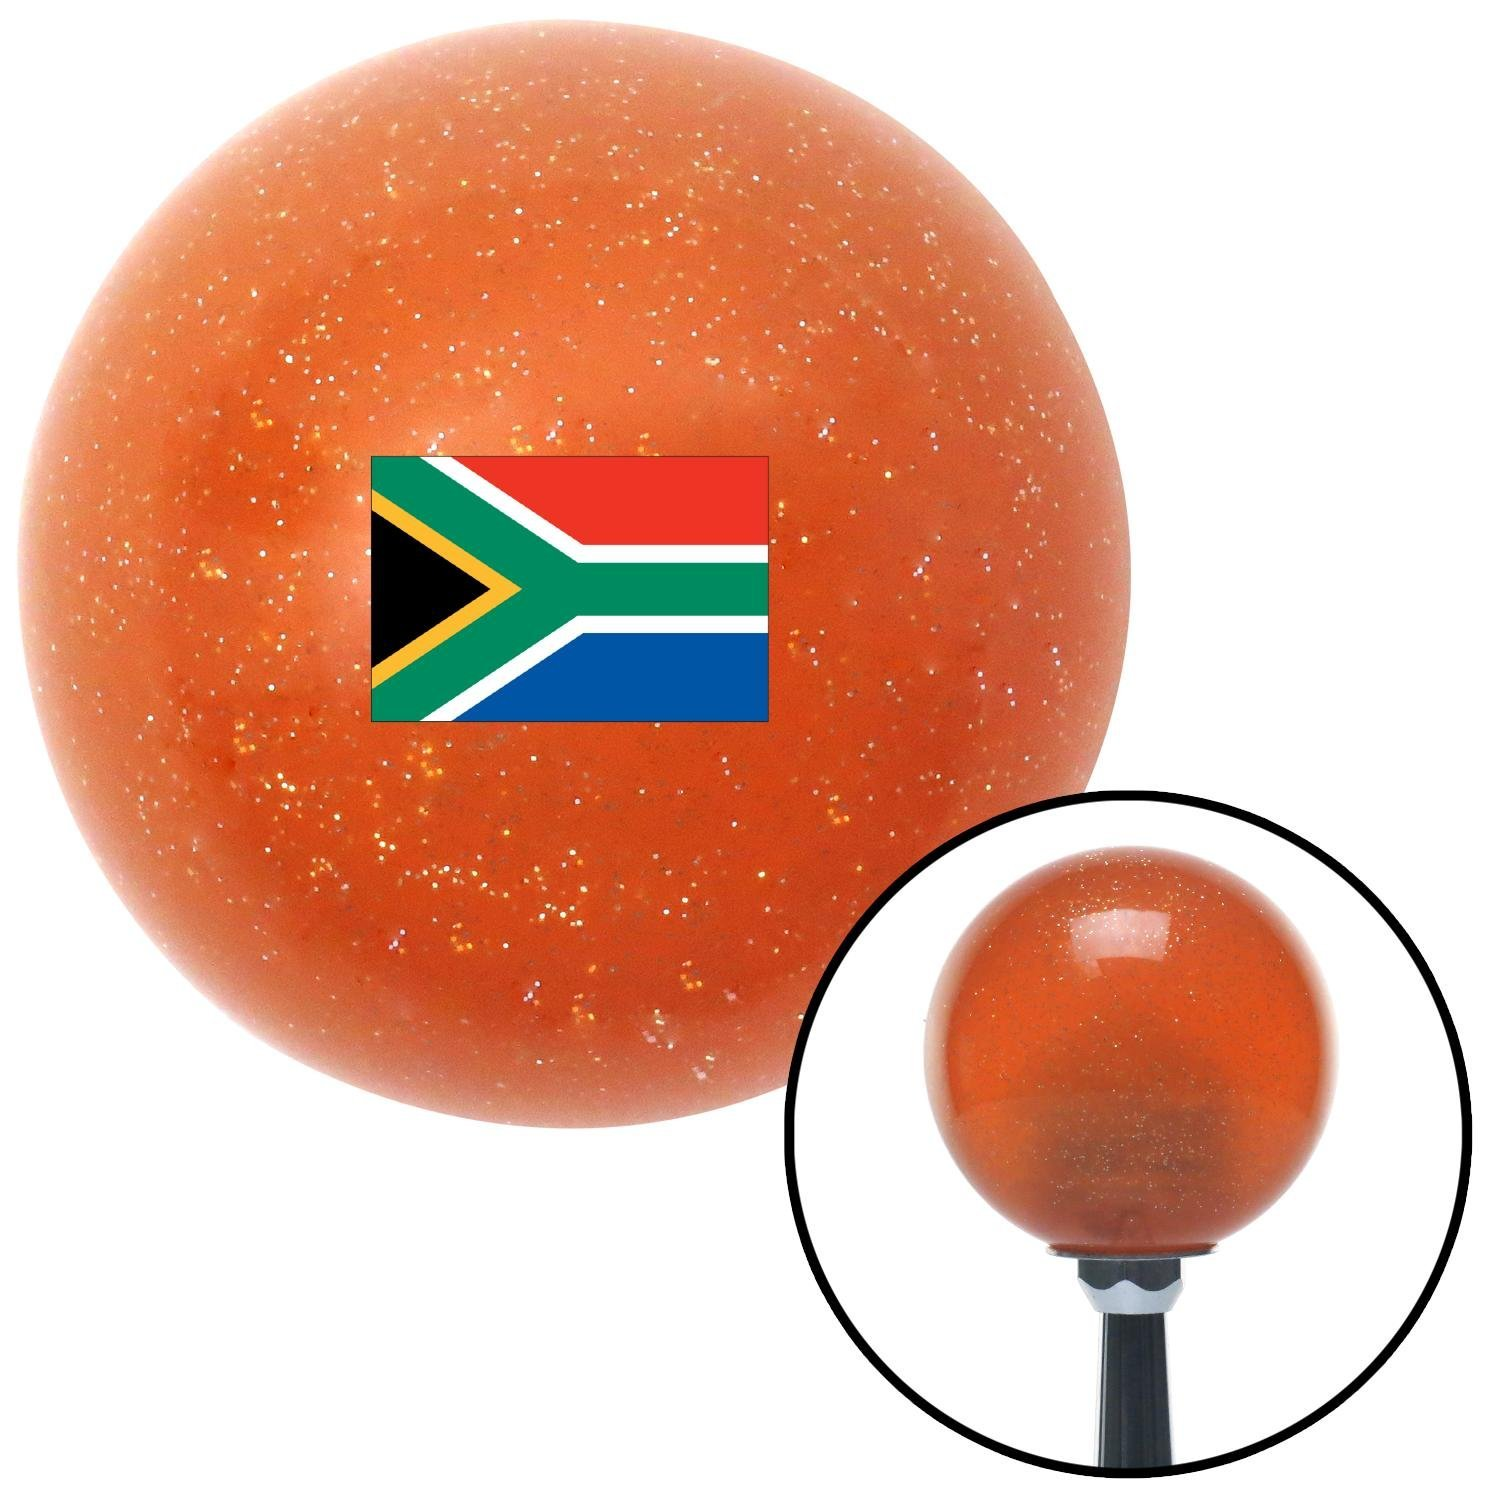 American Shifter 302922 Shift Knob South Africa Orange Metal Flake with M16 x 1.5 Insert